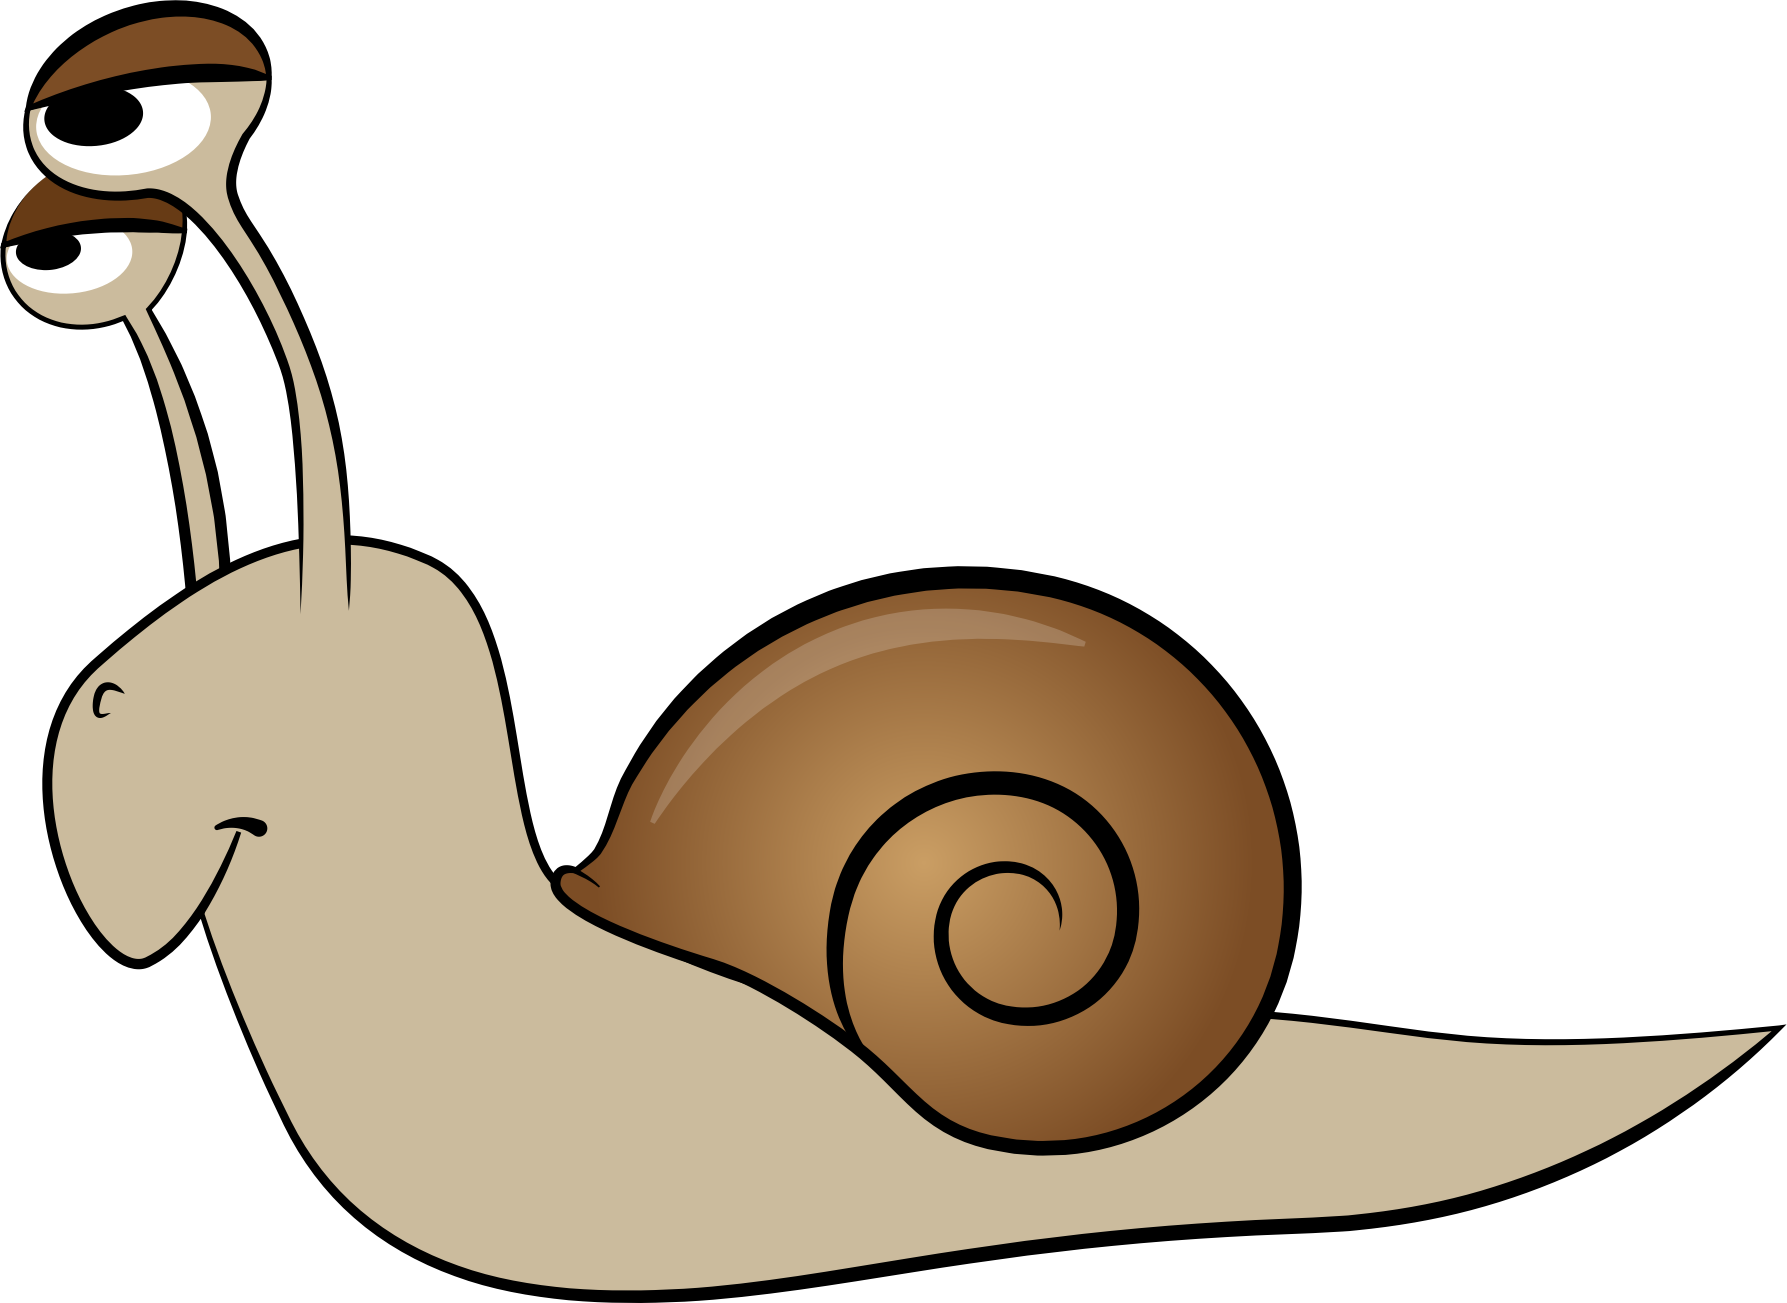 Snail food png. Cartoon icons free and